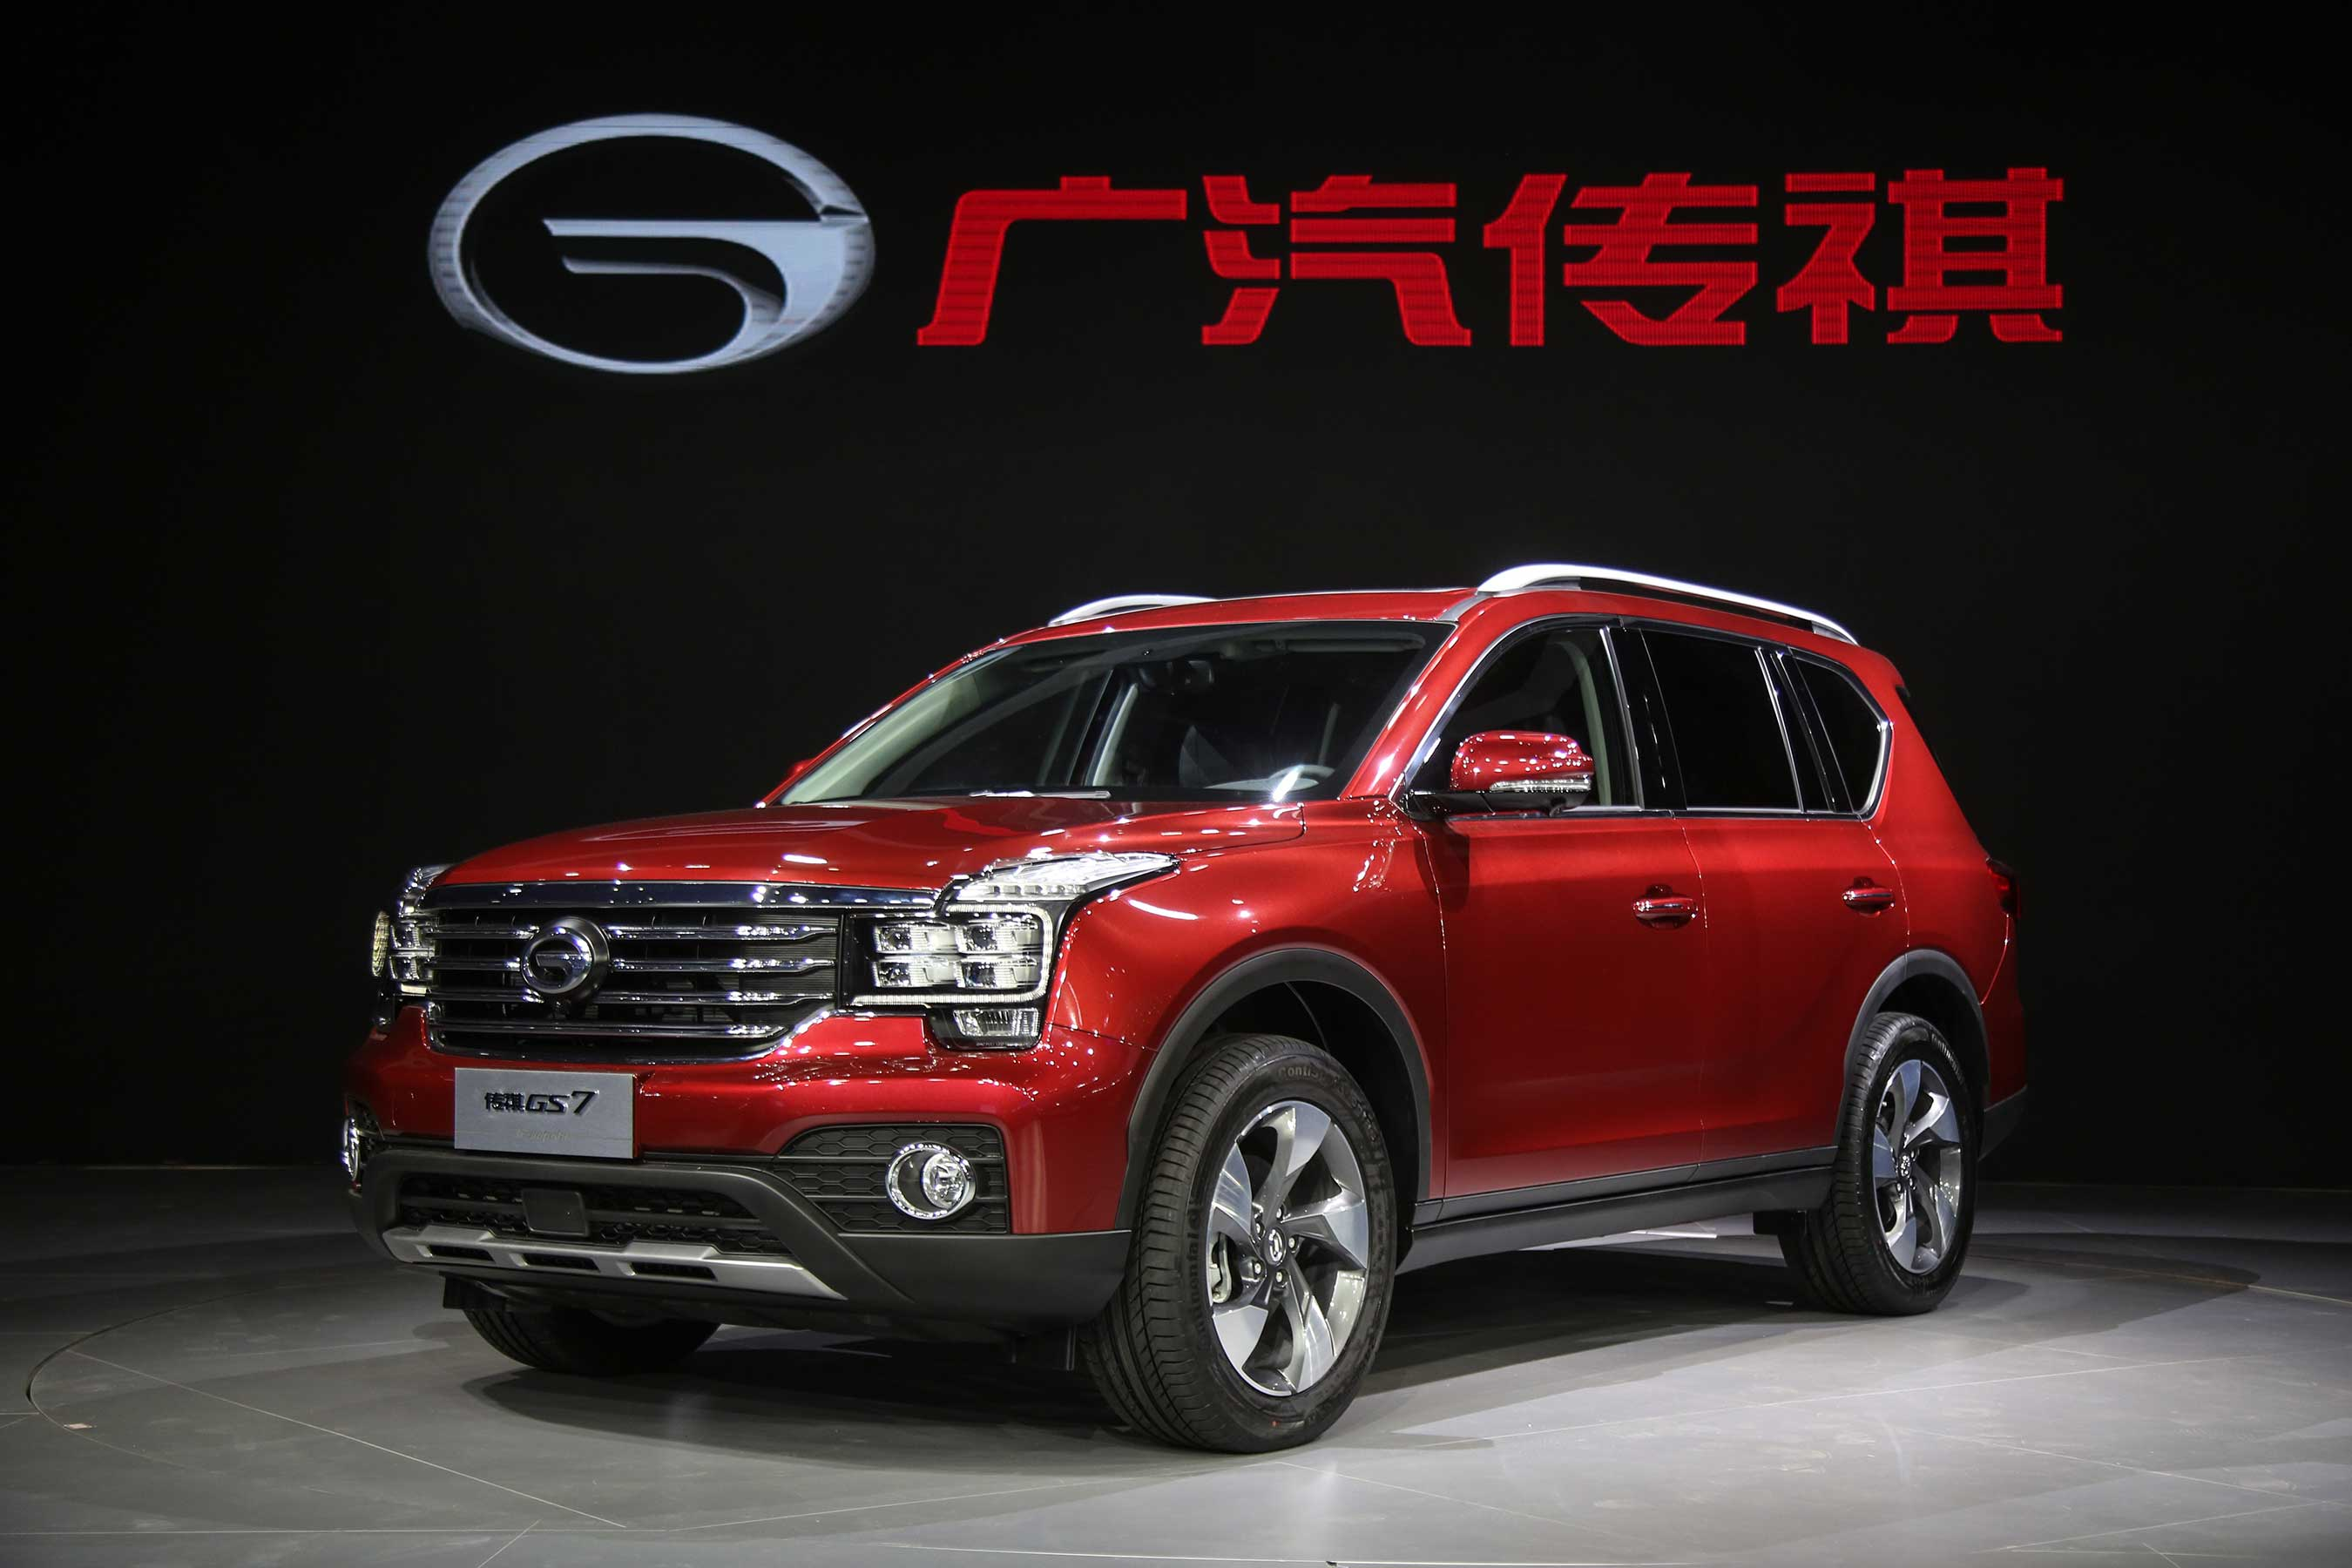 Gac motor brings six signature models to auto shanghai 2017 financialcontent business page - Shanghai auto show ...